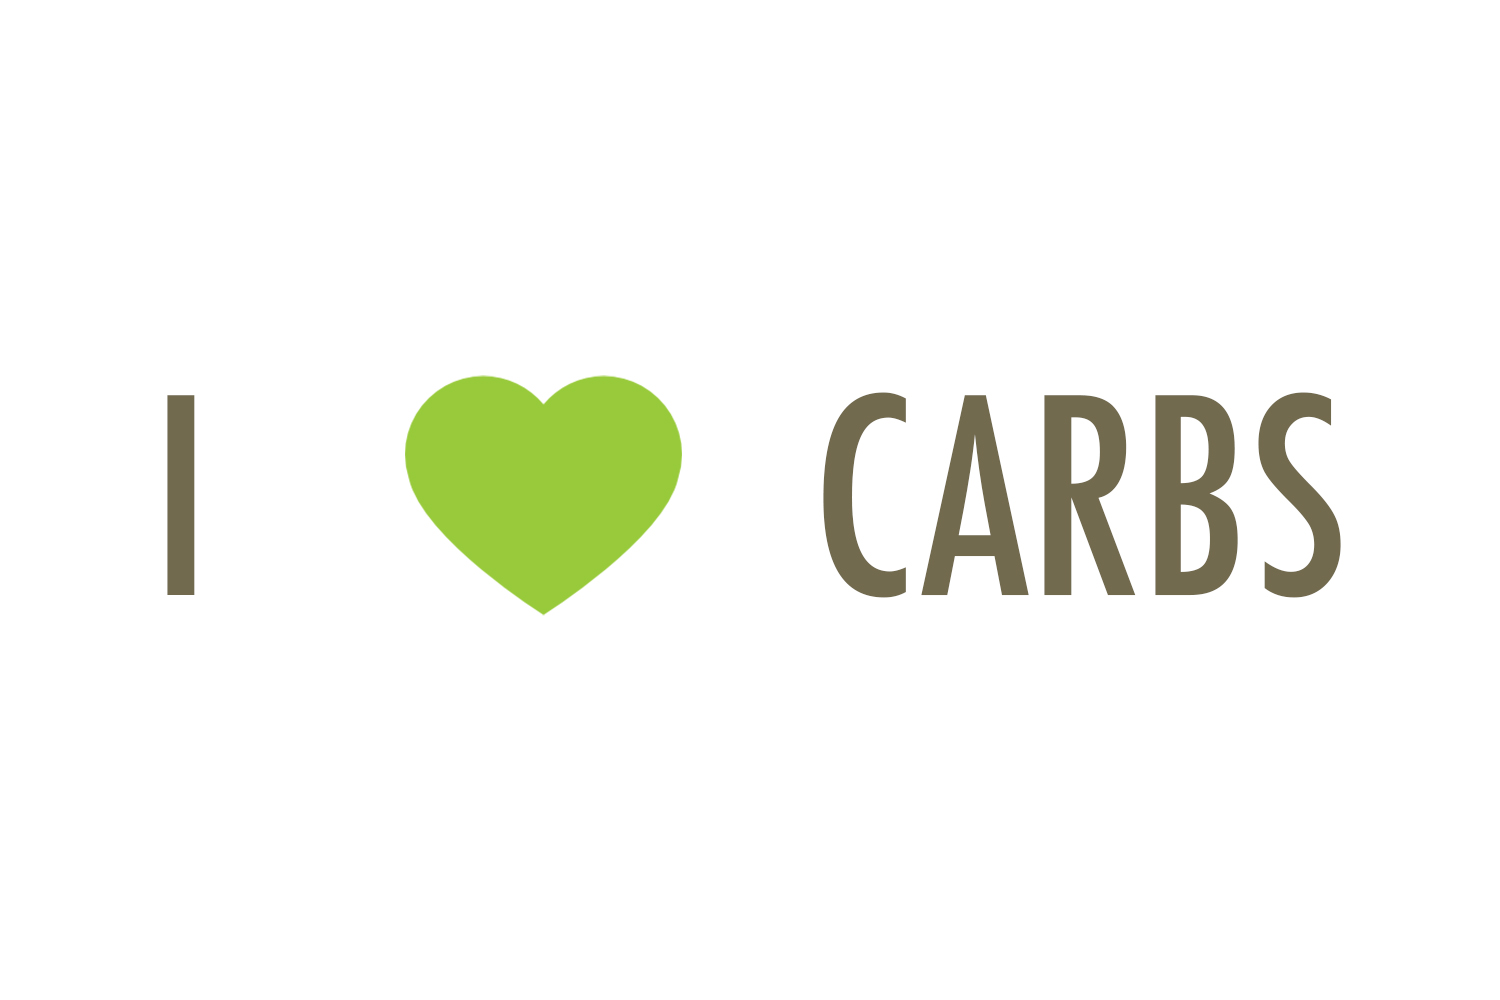 I-love-carbs-ydney-vegetarian-vegan-glutenfree-cookingschool-healthy-Japanese-nightbloodsugar-konjac-Konnyaku-green -tea-plant-based